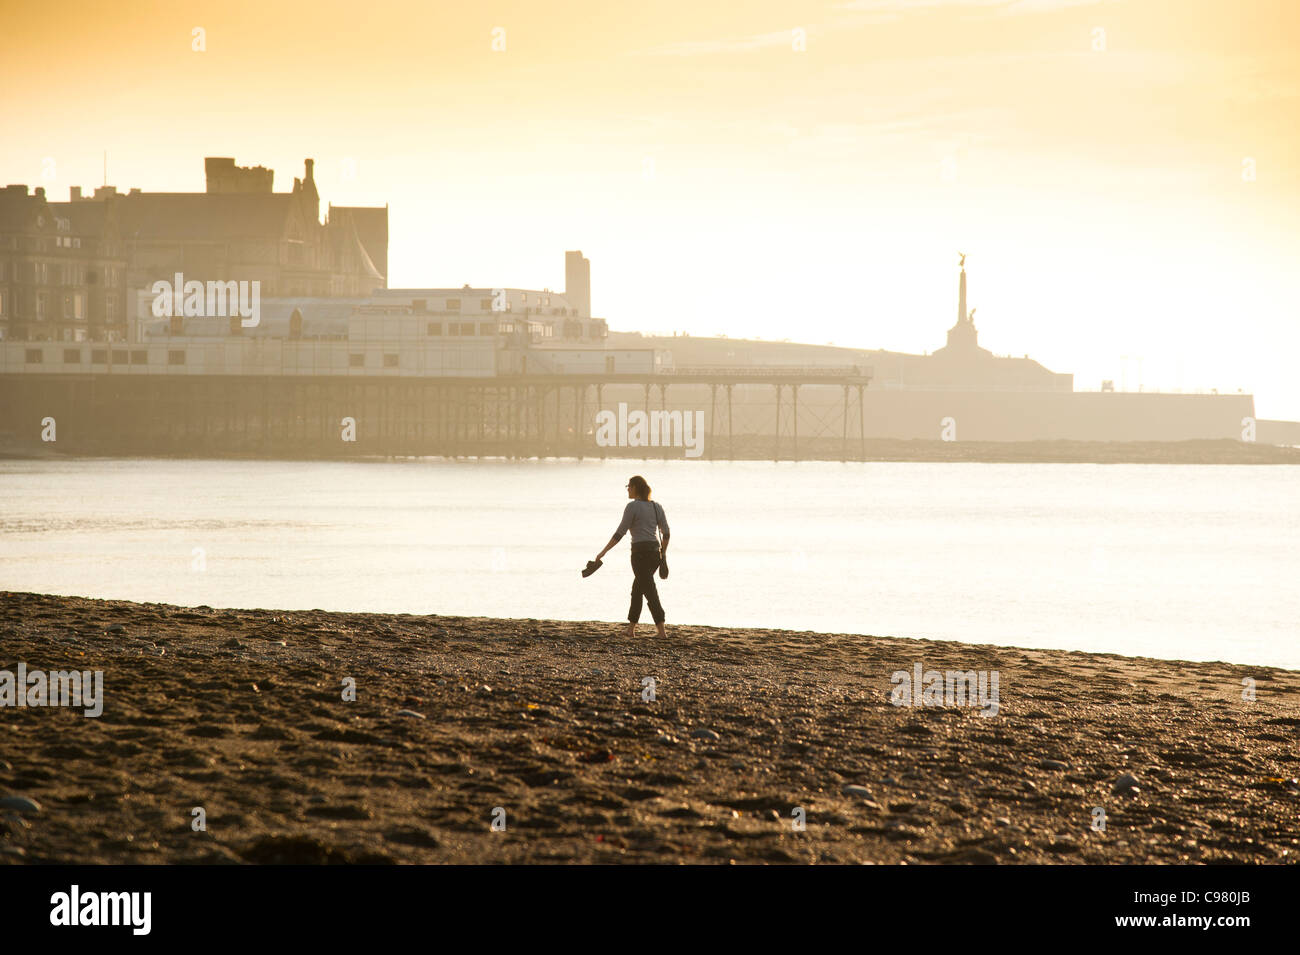 A woman walking barefoot on the beach enjoying a very warm November afternoon, Aberystwyth Ceredigion Wales UK - Stock Image